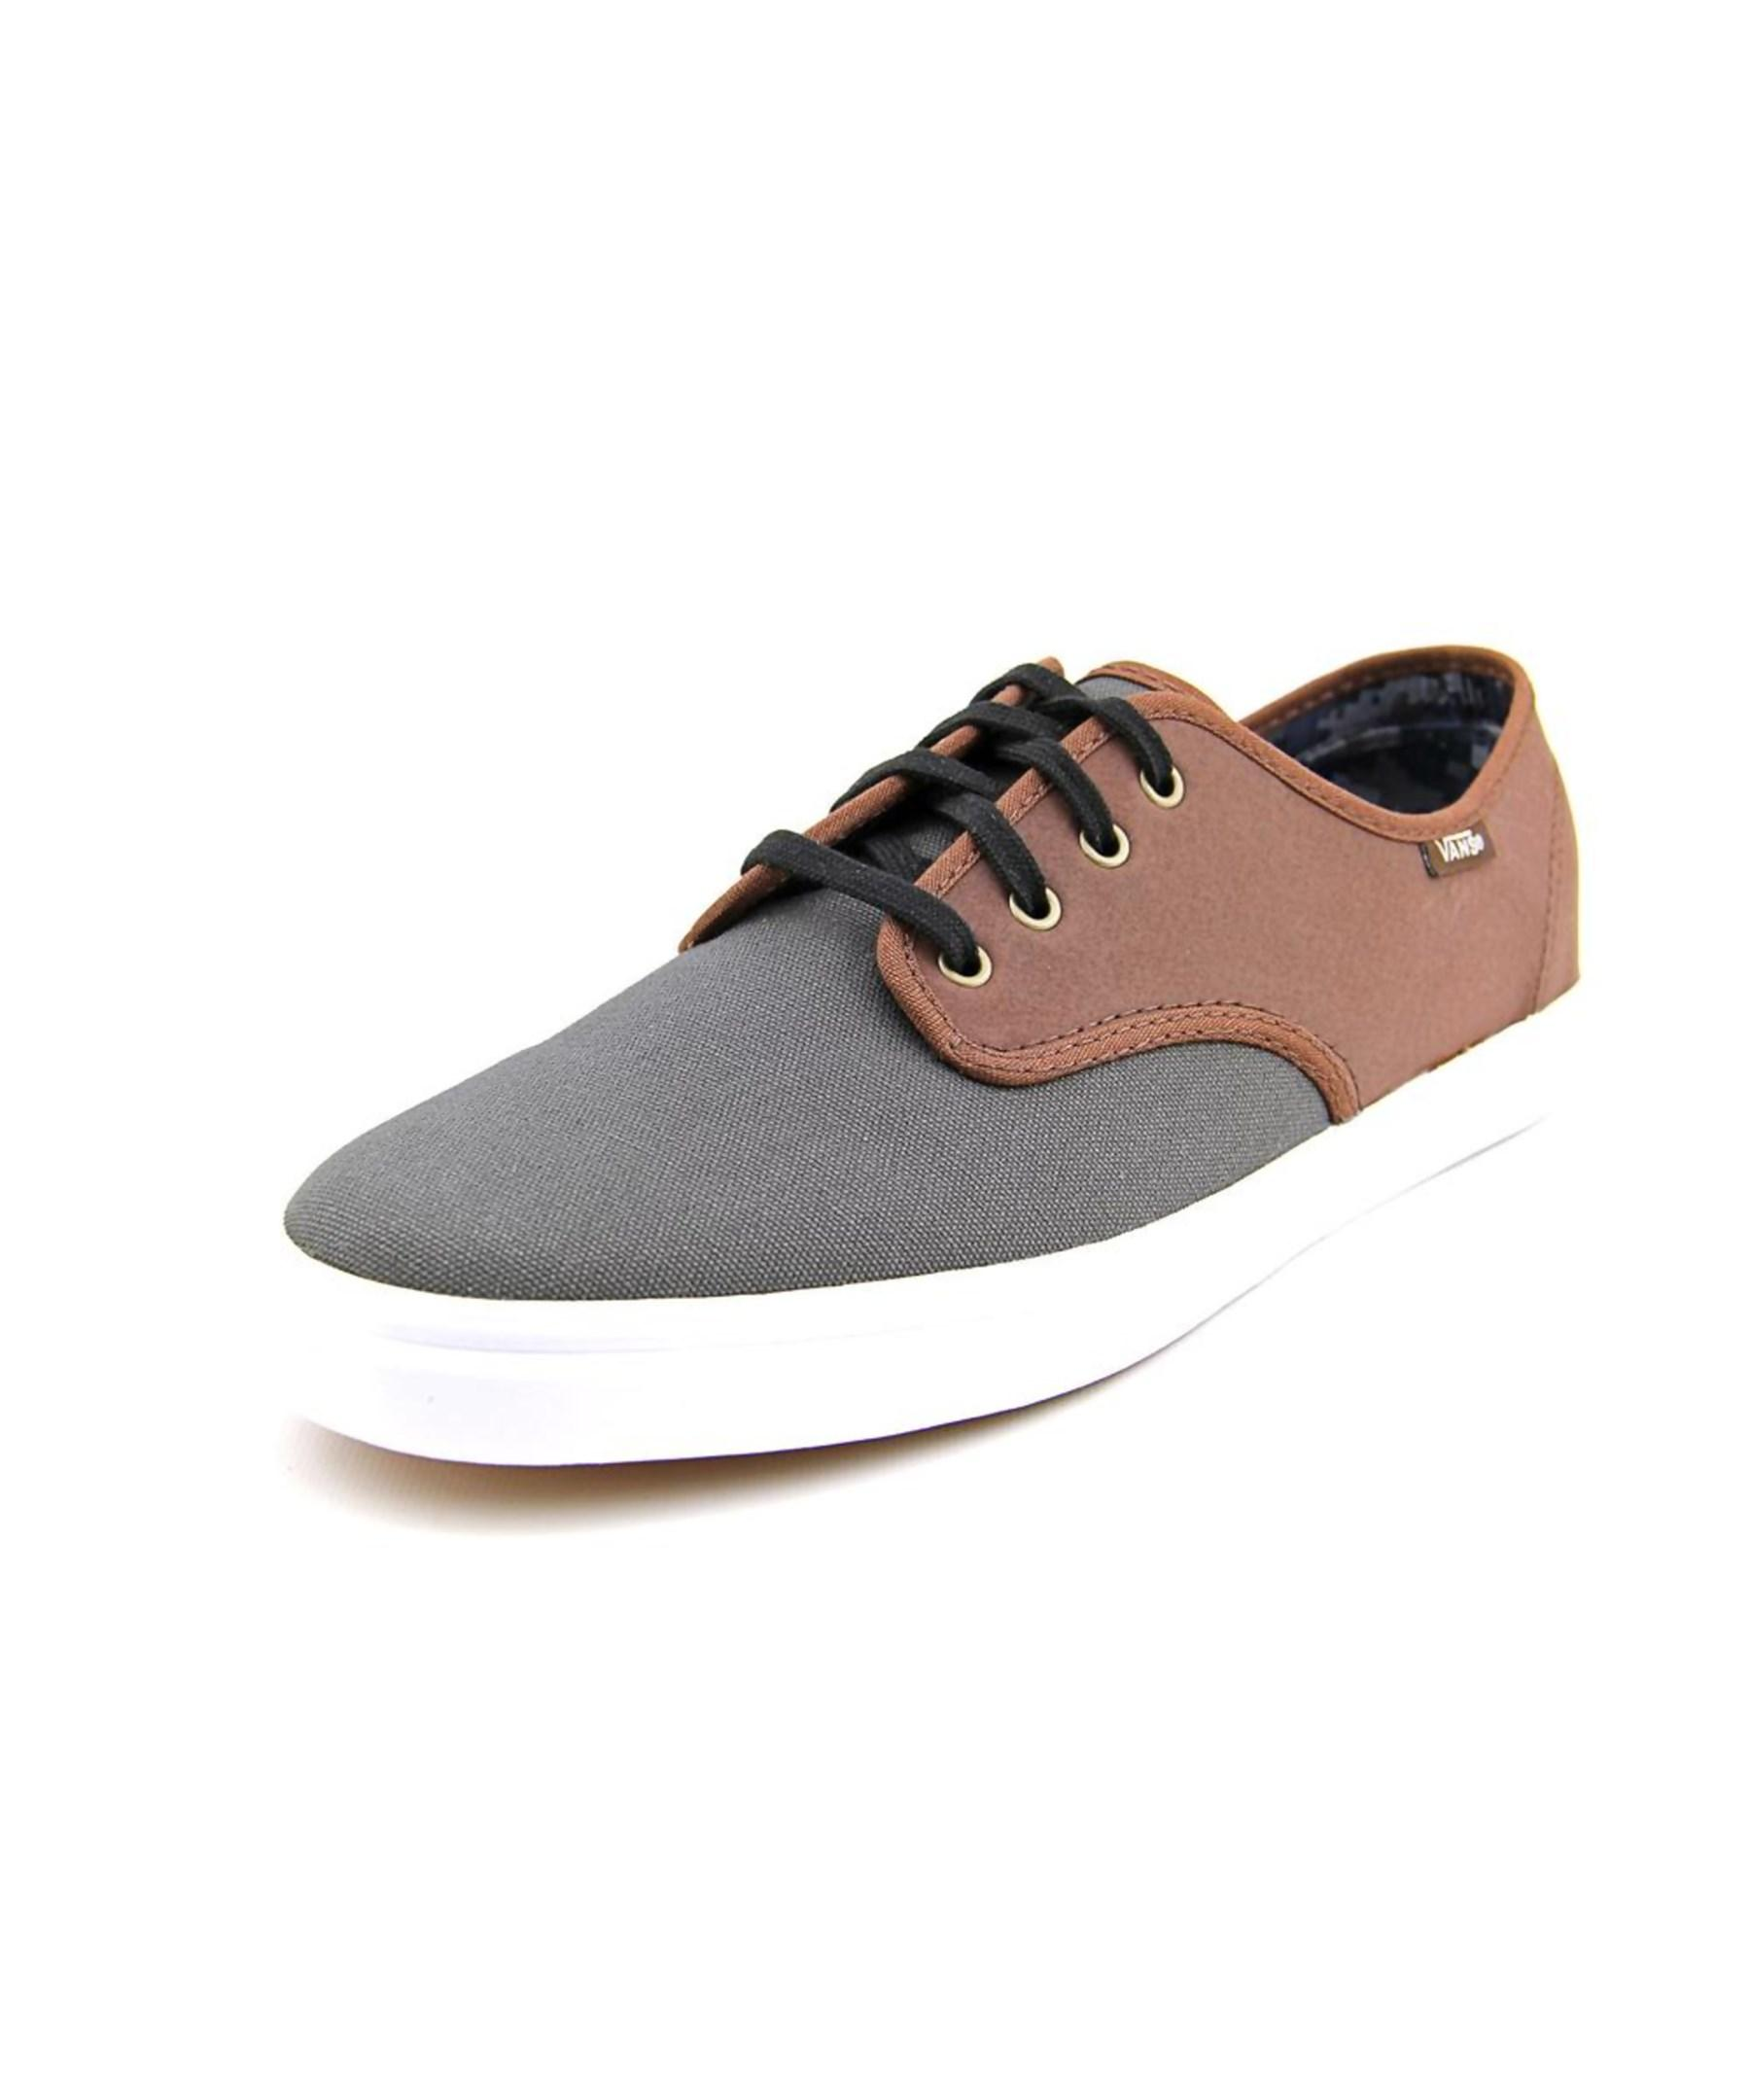 f957954828b5 Lyst - Vans Madero Round Toe Leather Sneakers in Black for Men